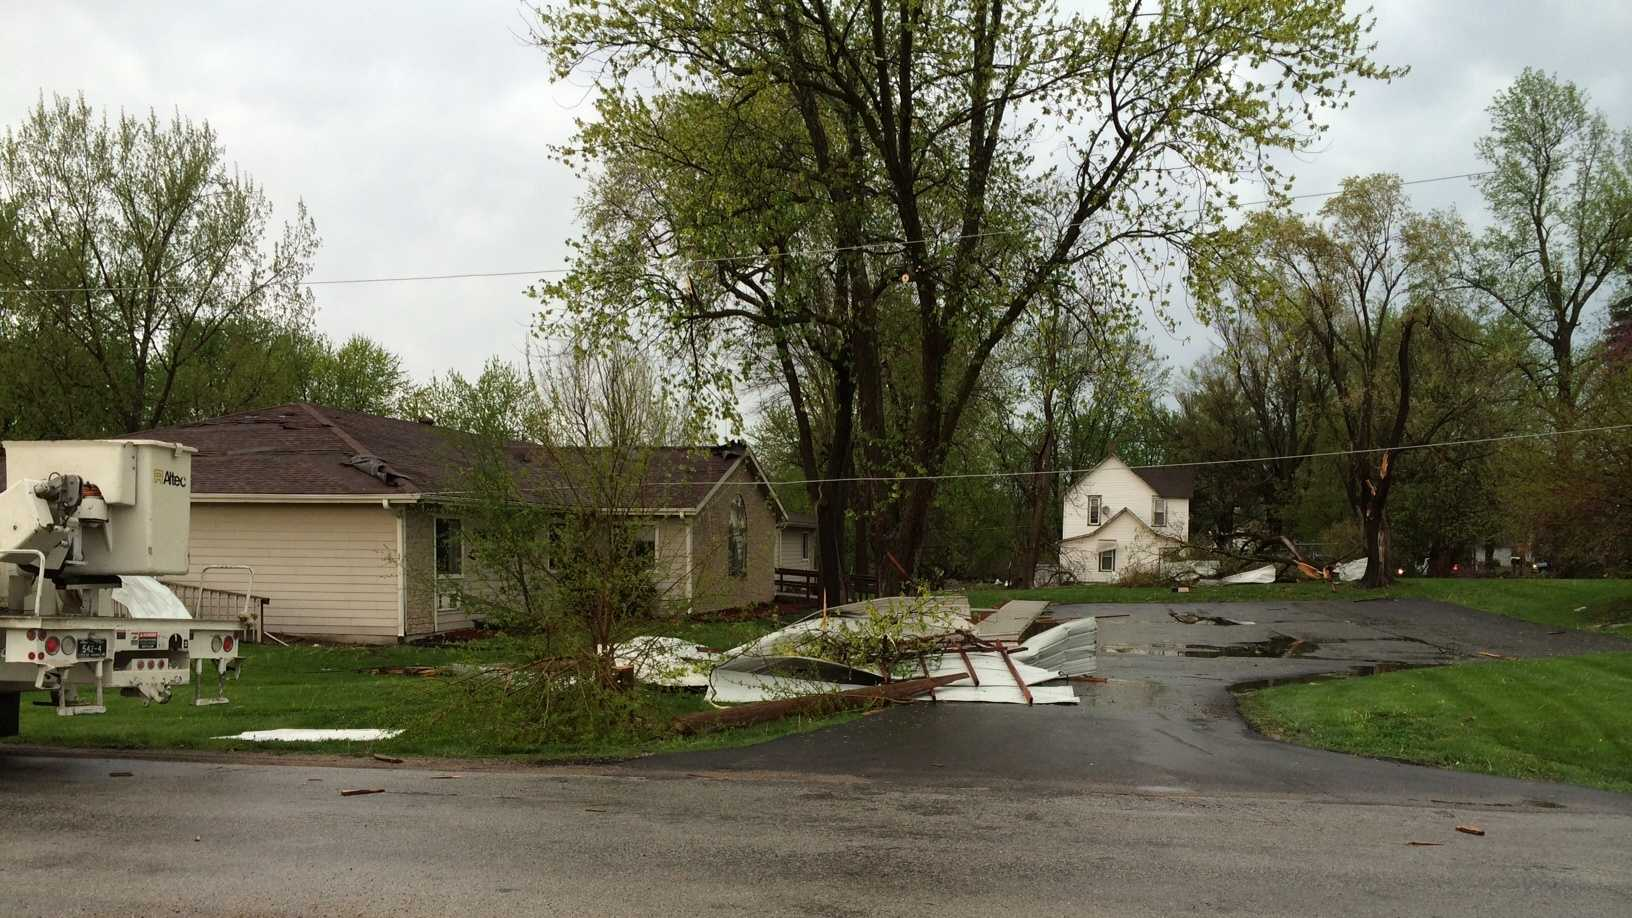 Images: Storm damage in Odessa, Mo.